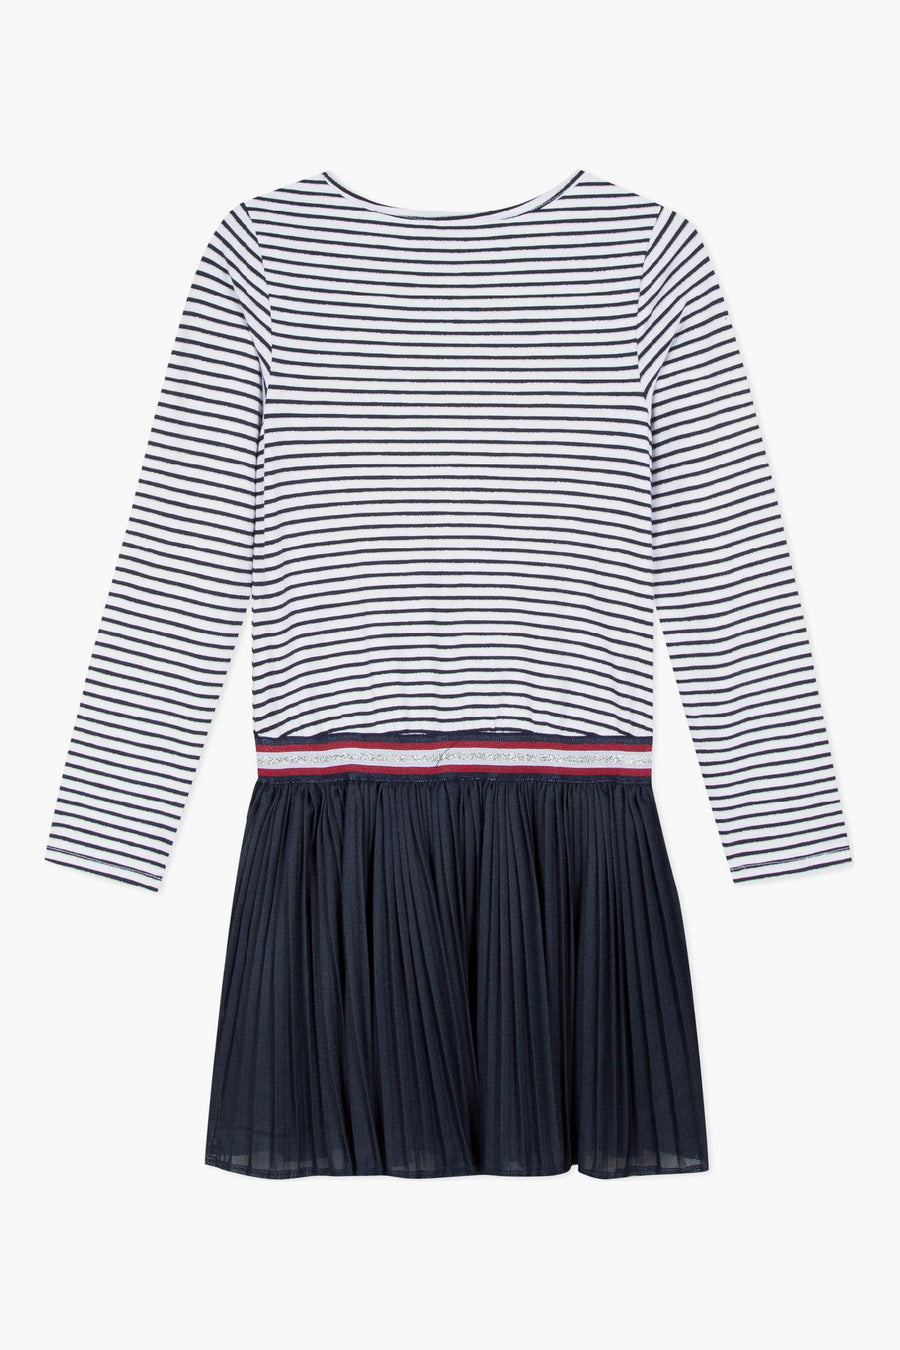 3pommes Striped Dress